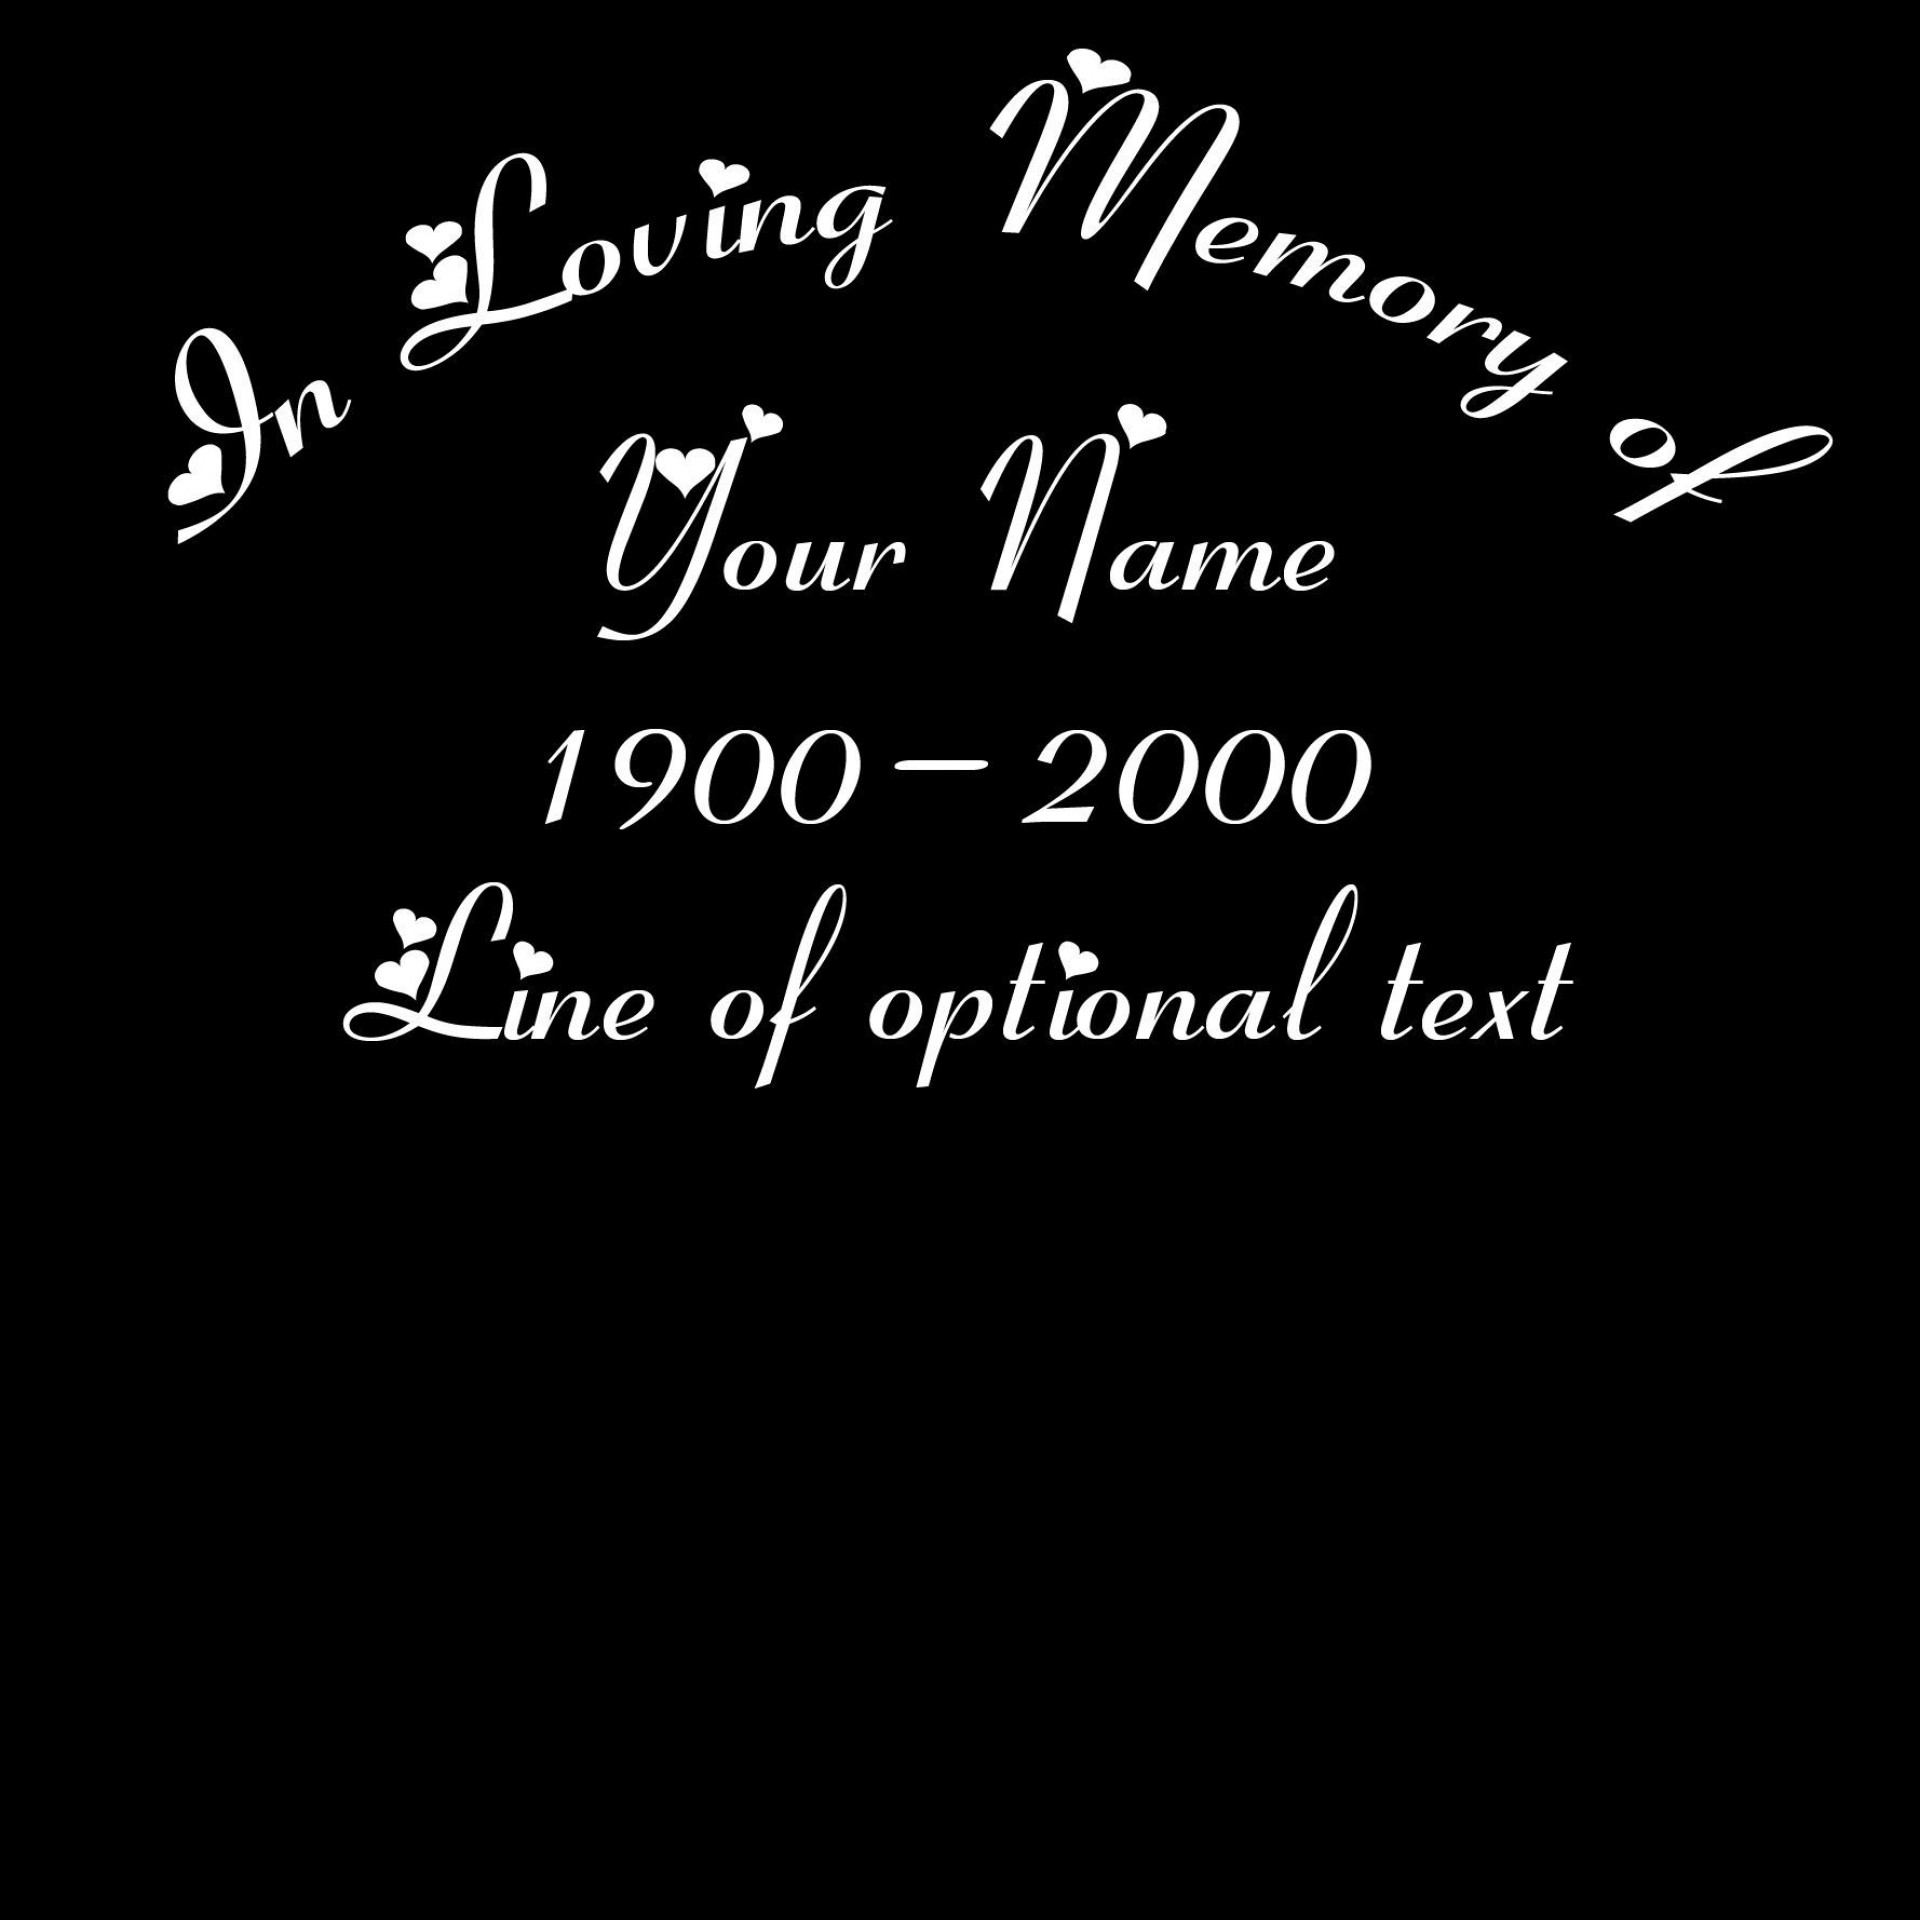 002 Awful In Loving Memory Decal Template High Def  Templates1920